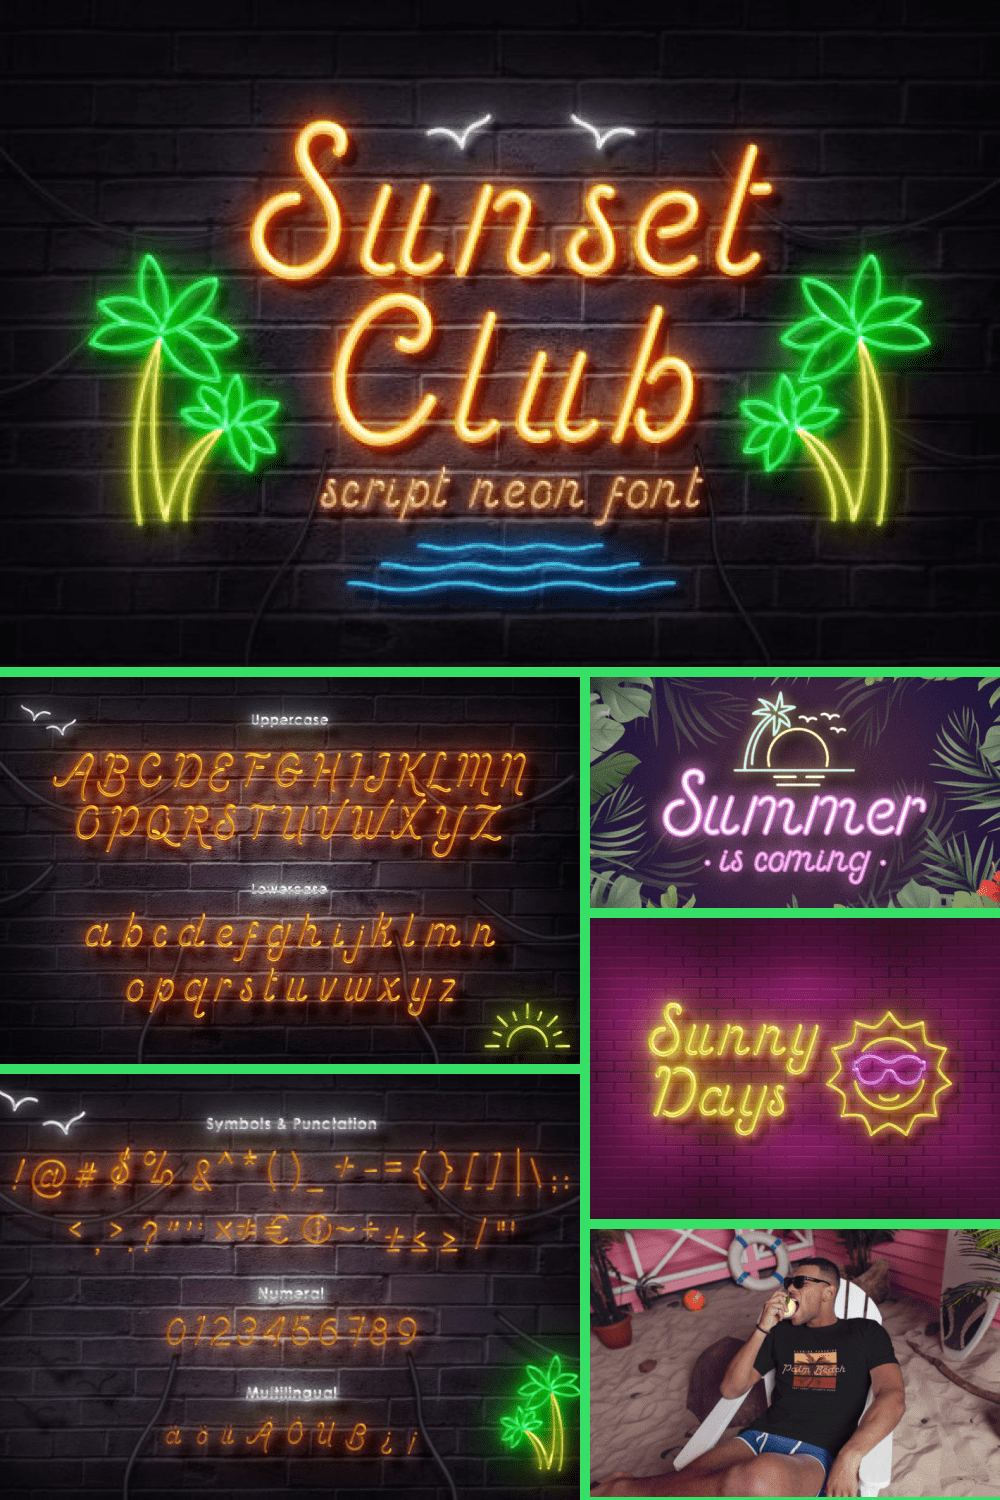 Pool font in neon style.